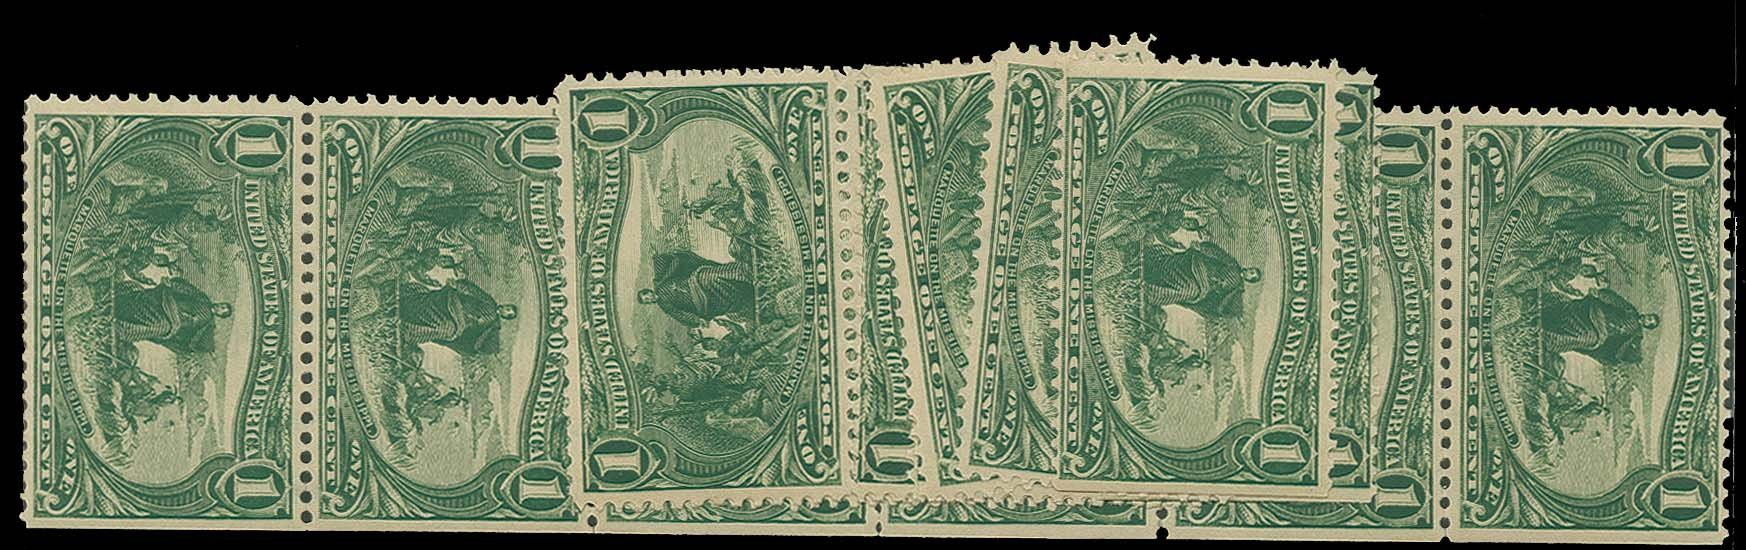 US Stamp Prices Scott Cat. # 285 - 1898 1c Trans Mississippi Exposition. H.R. Harmer, Oct 2014, Sale 3006, Lot 1296